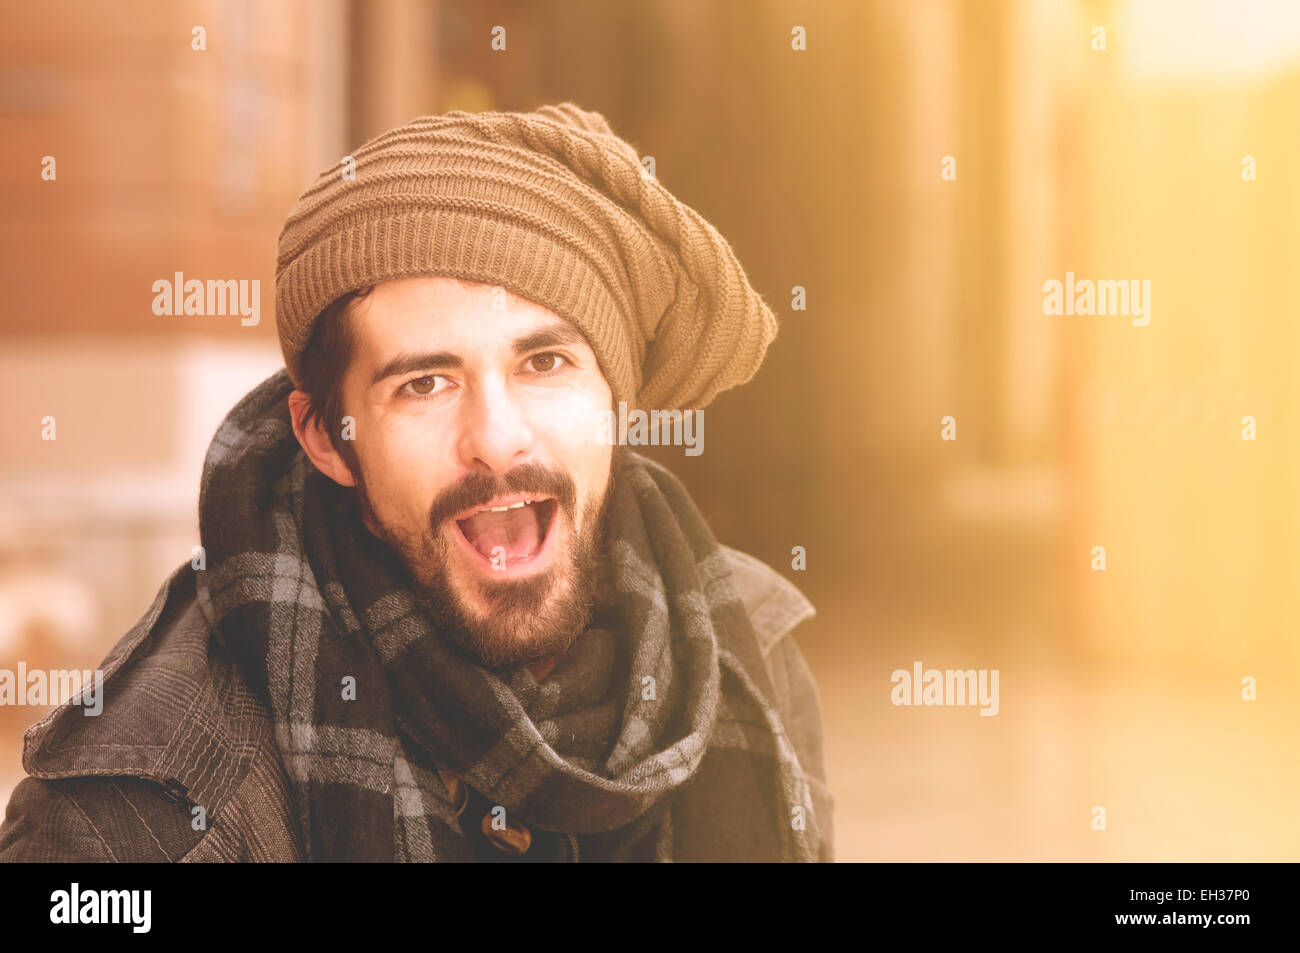 hipster man having fun shouting in the city instagram tones - Stock Image